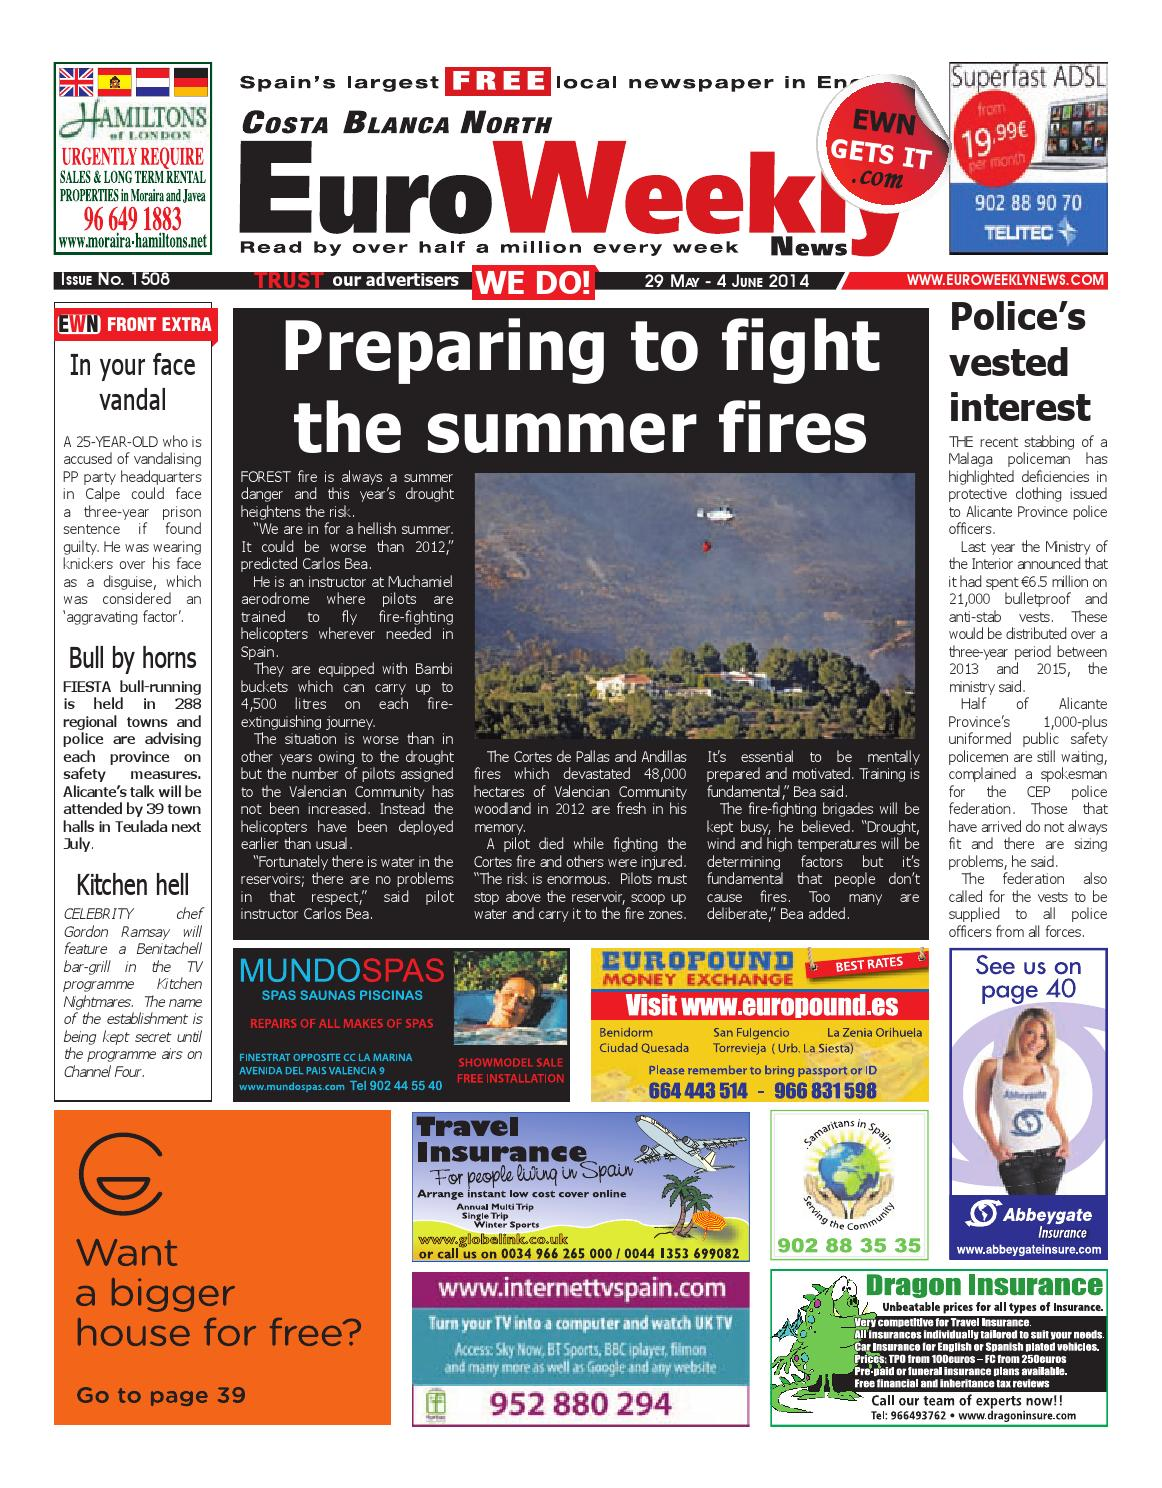 Muebles Gisbert Cornella - Euro Weekly News Costa Blanca North 29 May 4 June 2014 Issue [mjhdah]https://image.isu.pub/120302061216-e13180096b124895945b9ff3b7248d3a/jpg/page_1.jpg